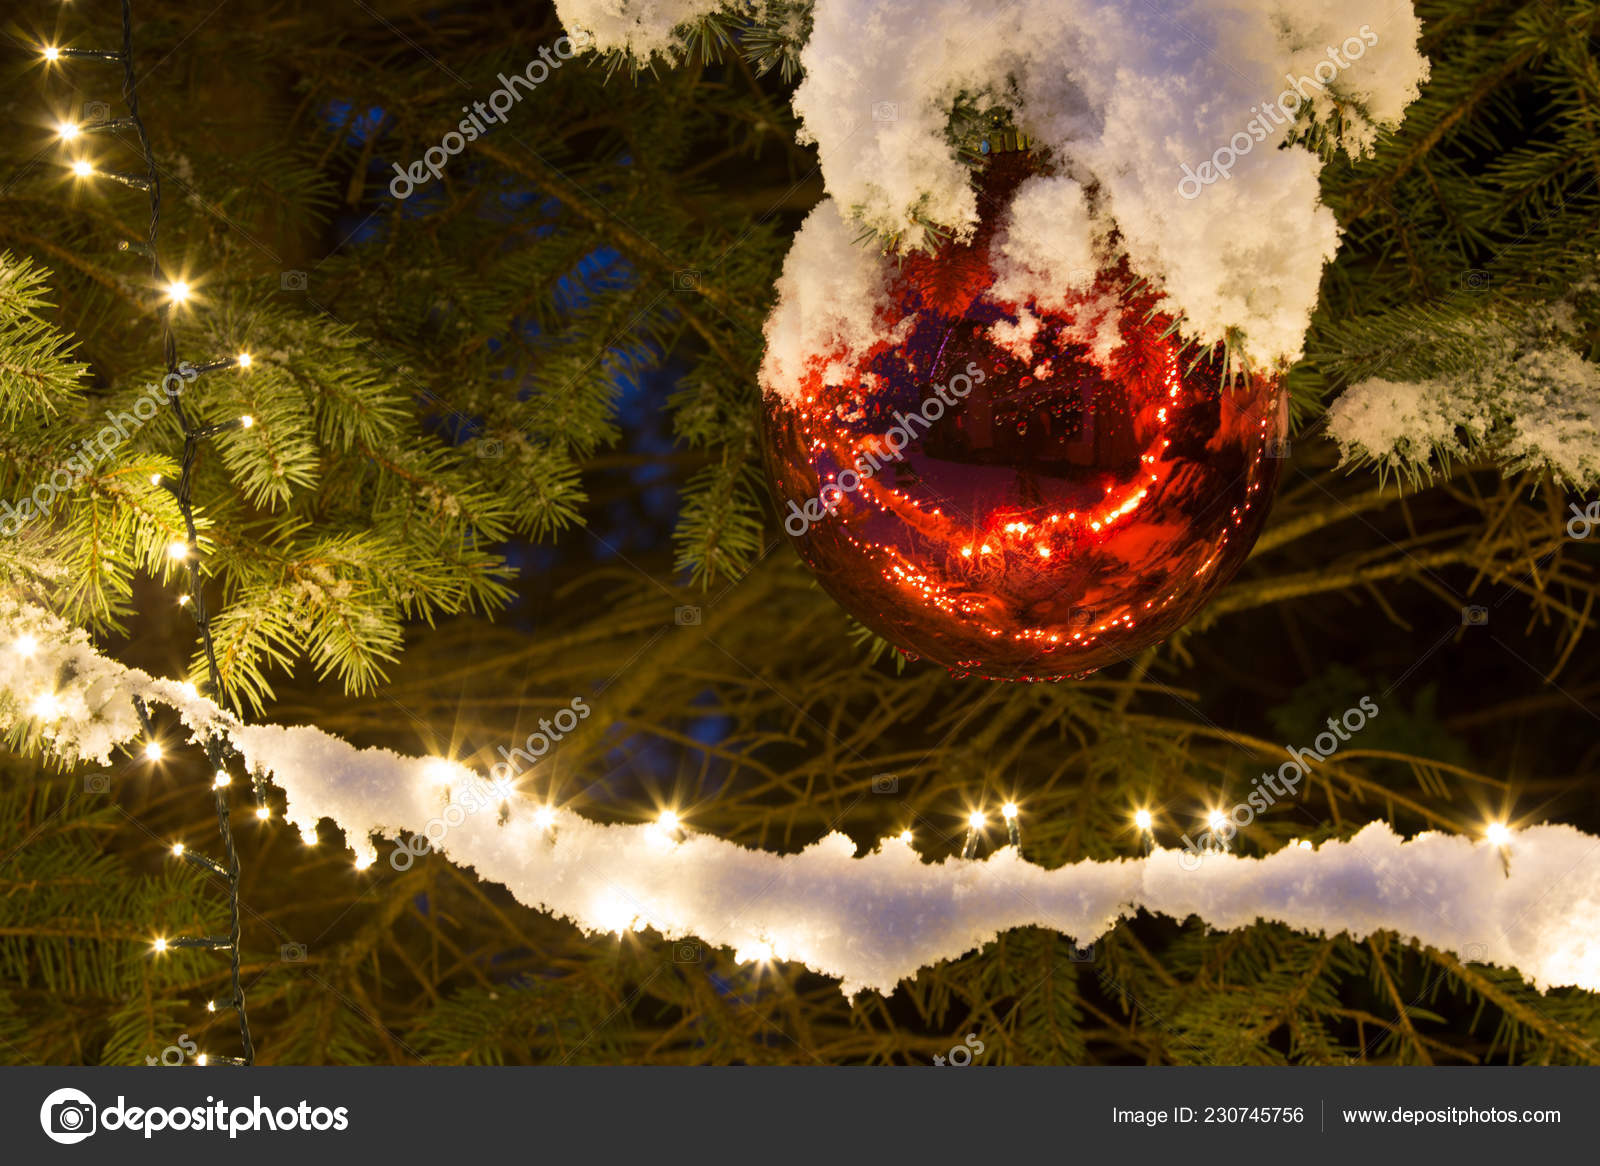 snow covered pine tree lighting red glass ball christmas ornament stock photo image by c belphnaque 230745756